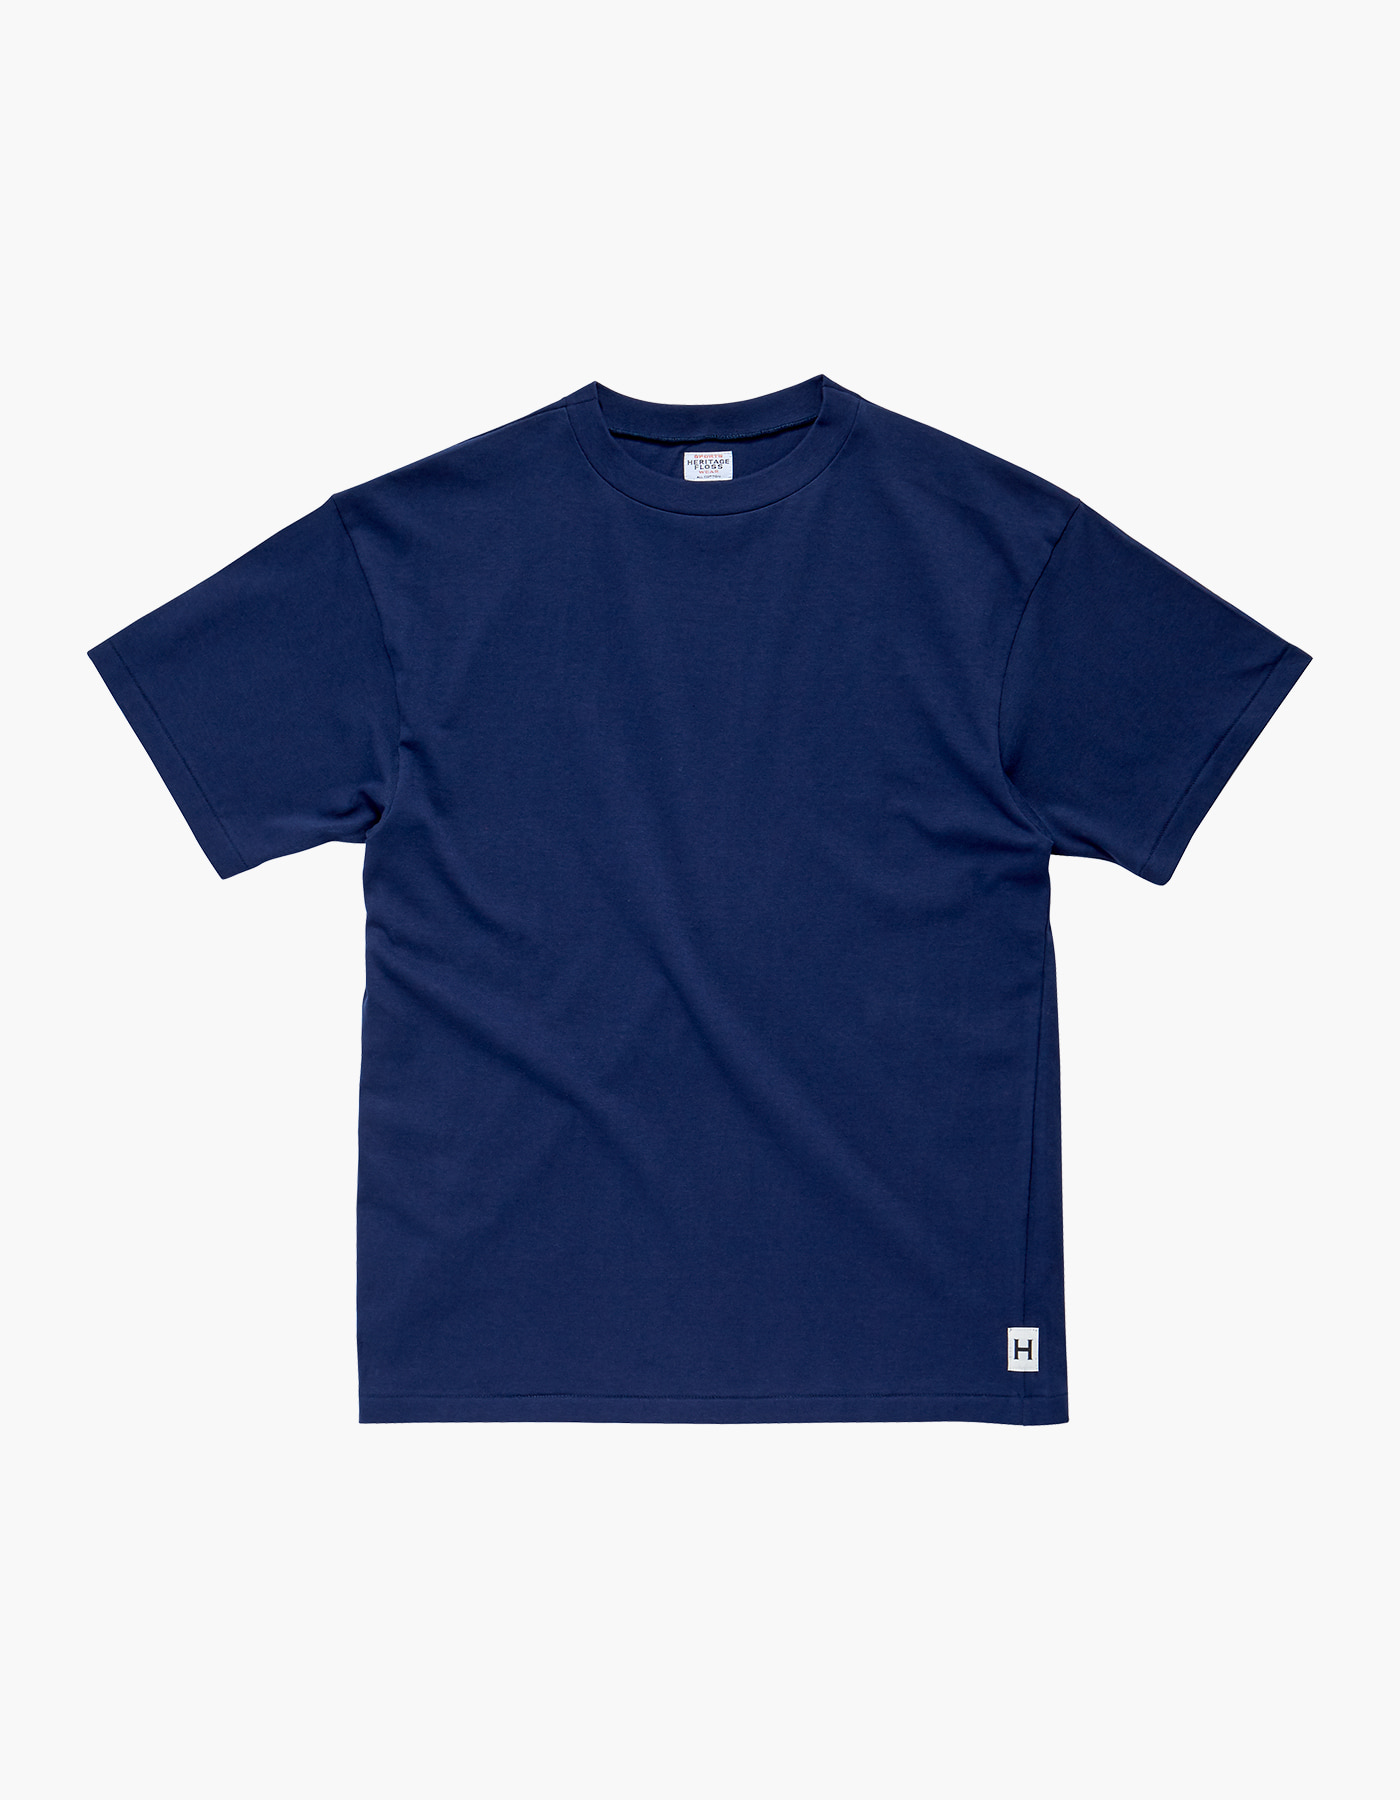 AMERICAN COTTON SINGLE T-SHIRTS / NAVY